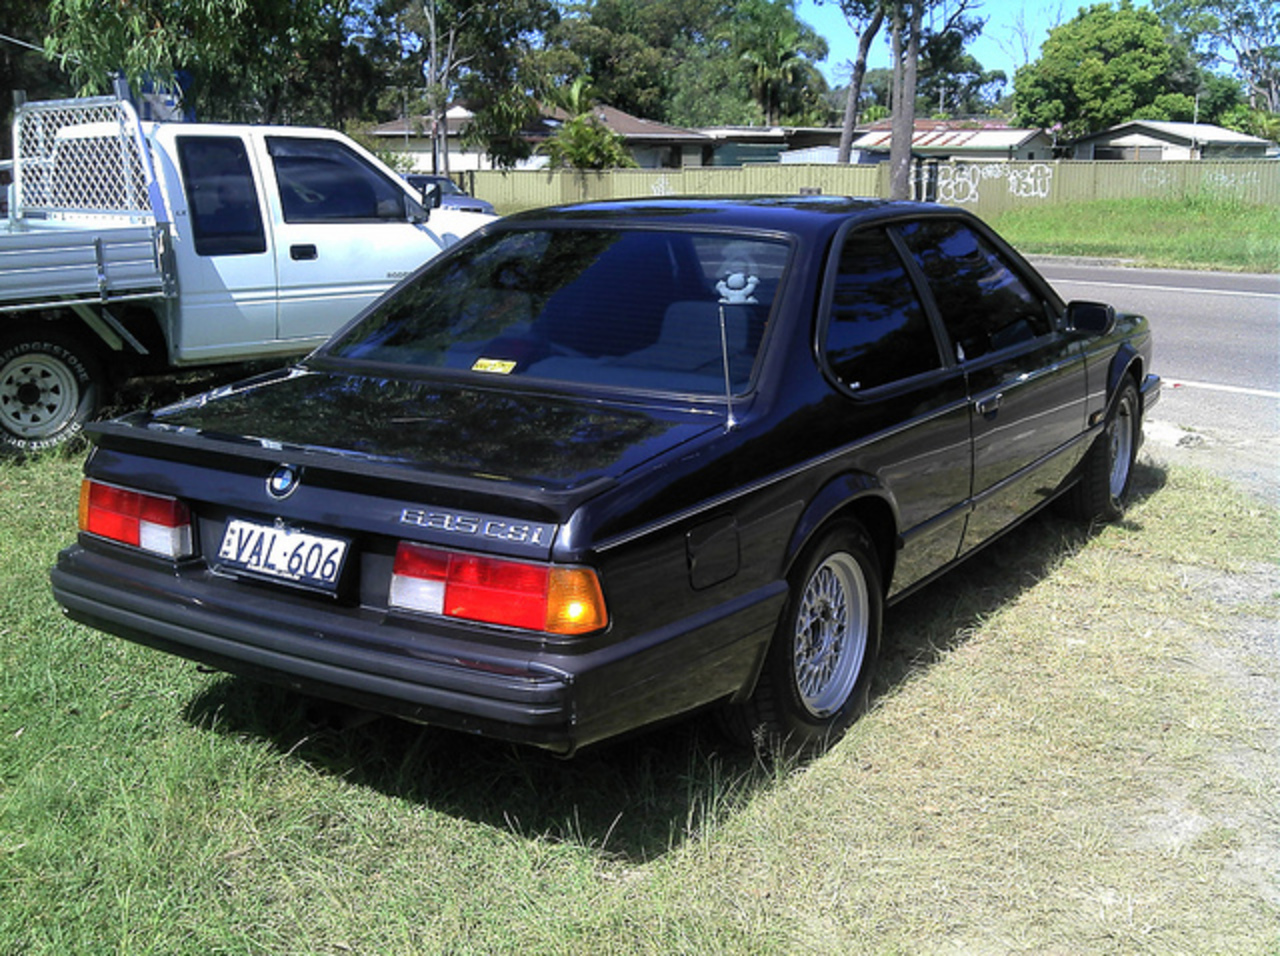 1988 BMW 635 CSI Coupe | Flickr - Photo Sharing!